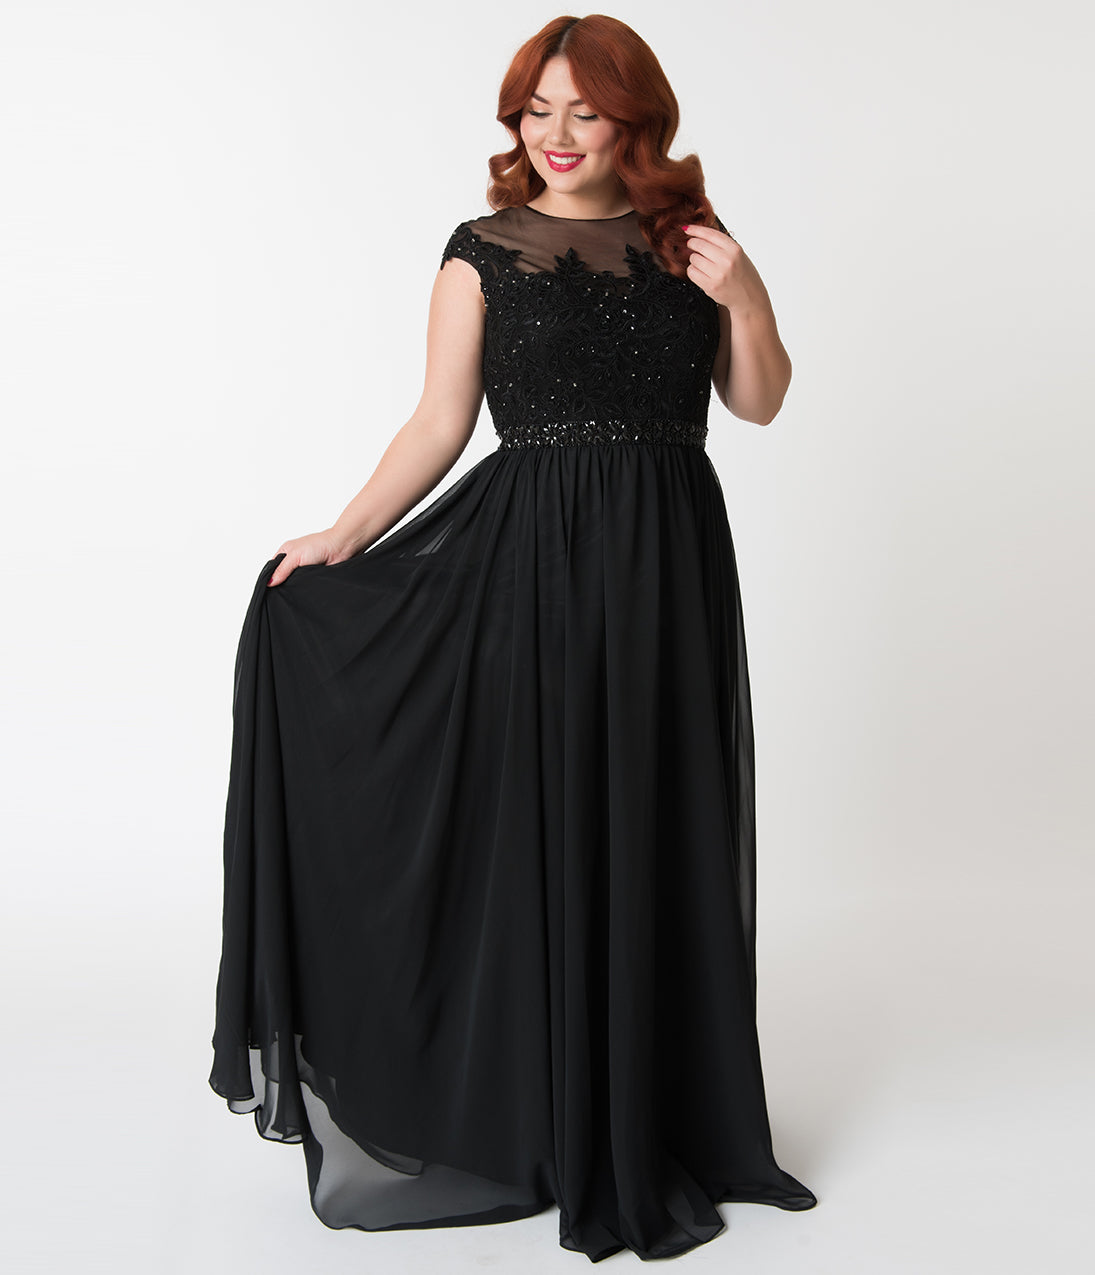 where can i find vintage prom dresses new